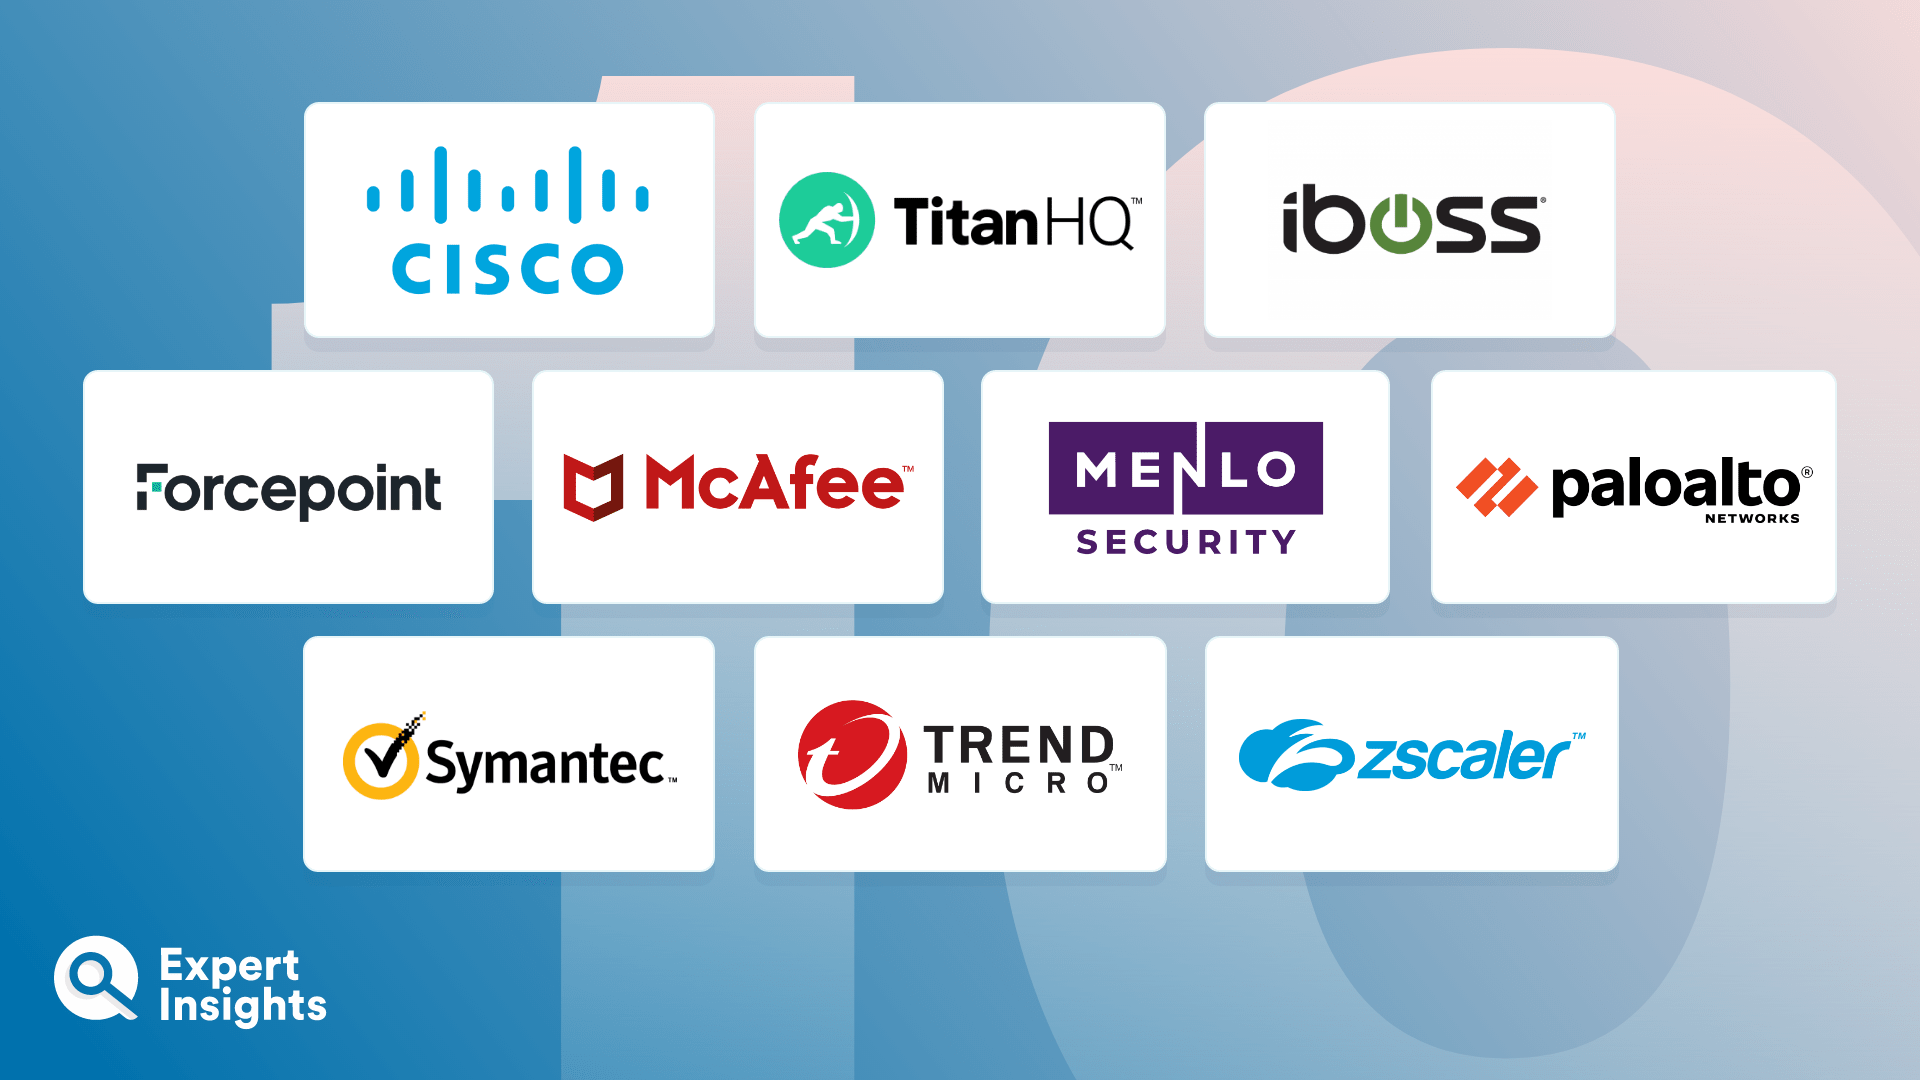 Top Web Security Solutions - Expert Insights